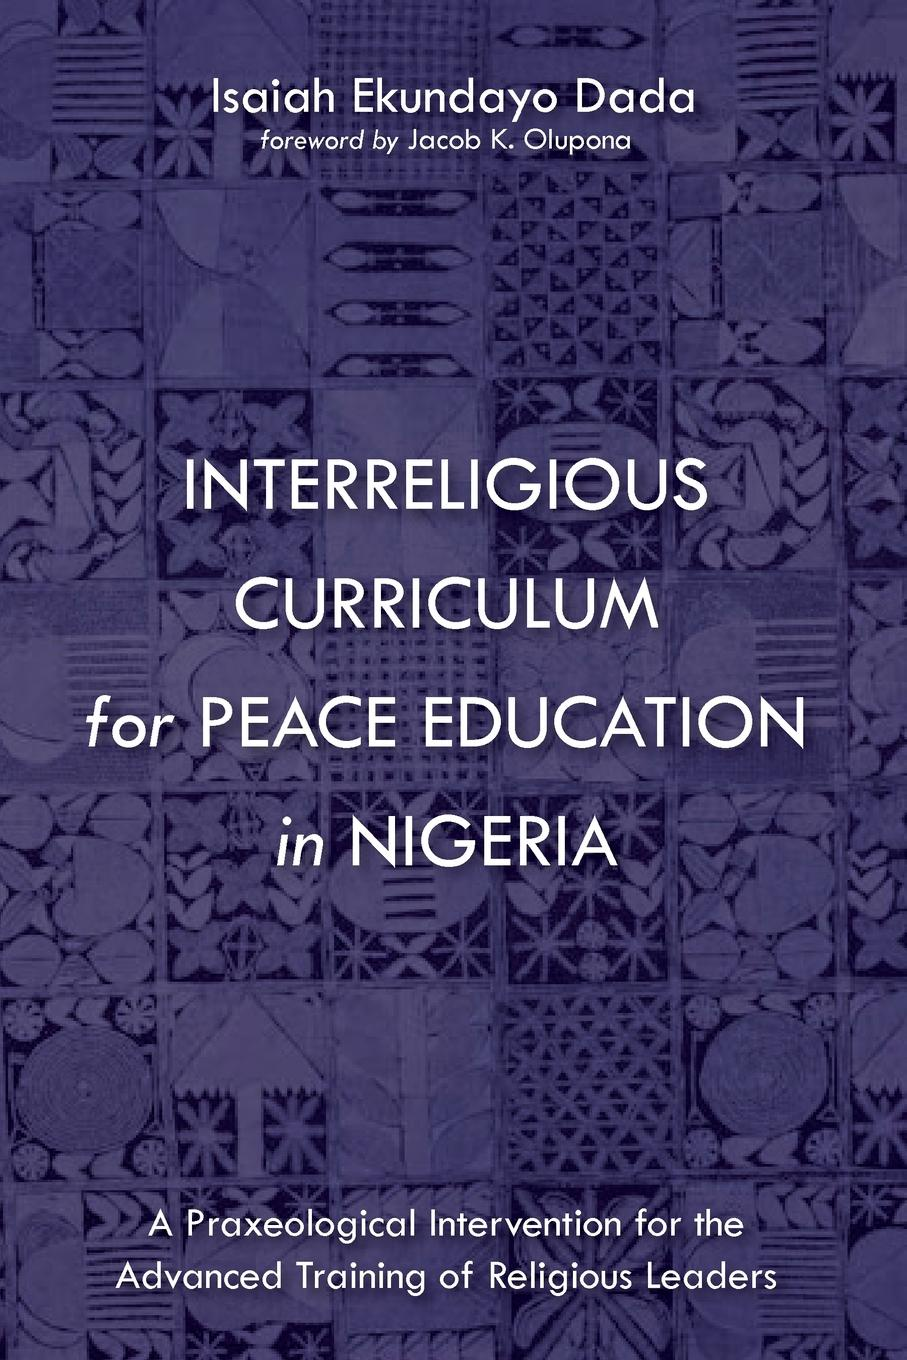 Isaiah Ekundayo Dada Interreligious Curriculum for Peace Education in Nigeria mehmet ozan asik religious education in egypt a sociological analysis of contesting religious educational institutions policies and discourses